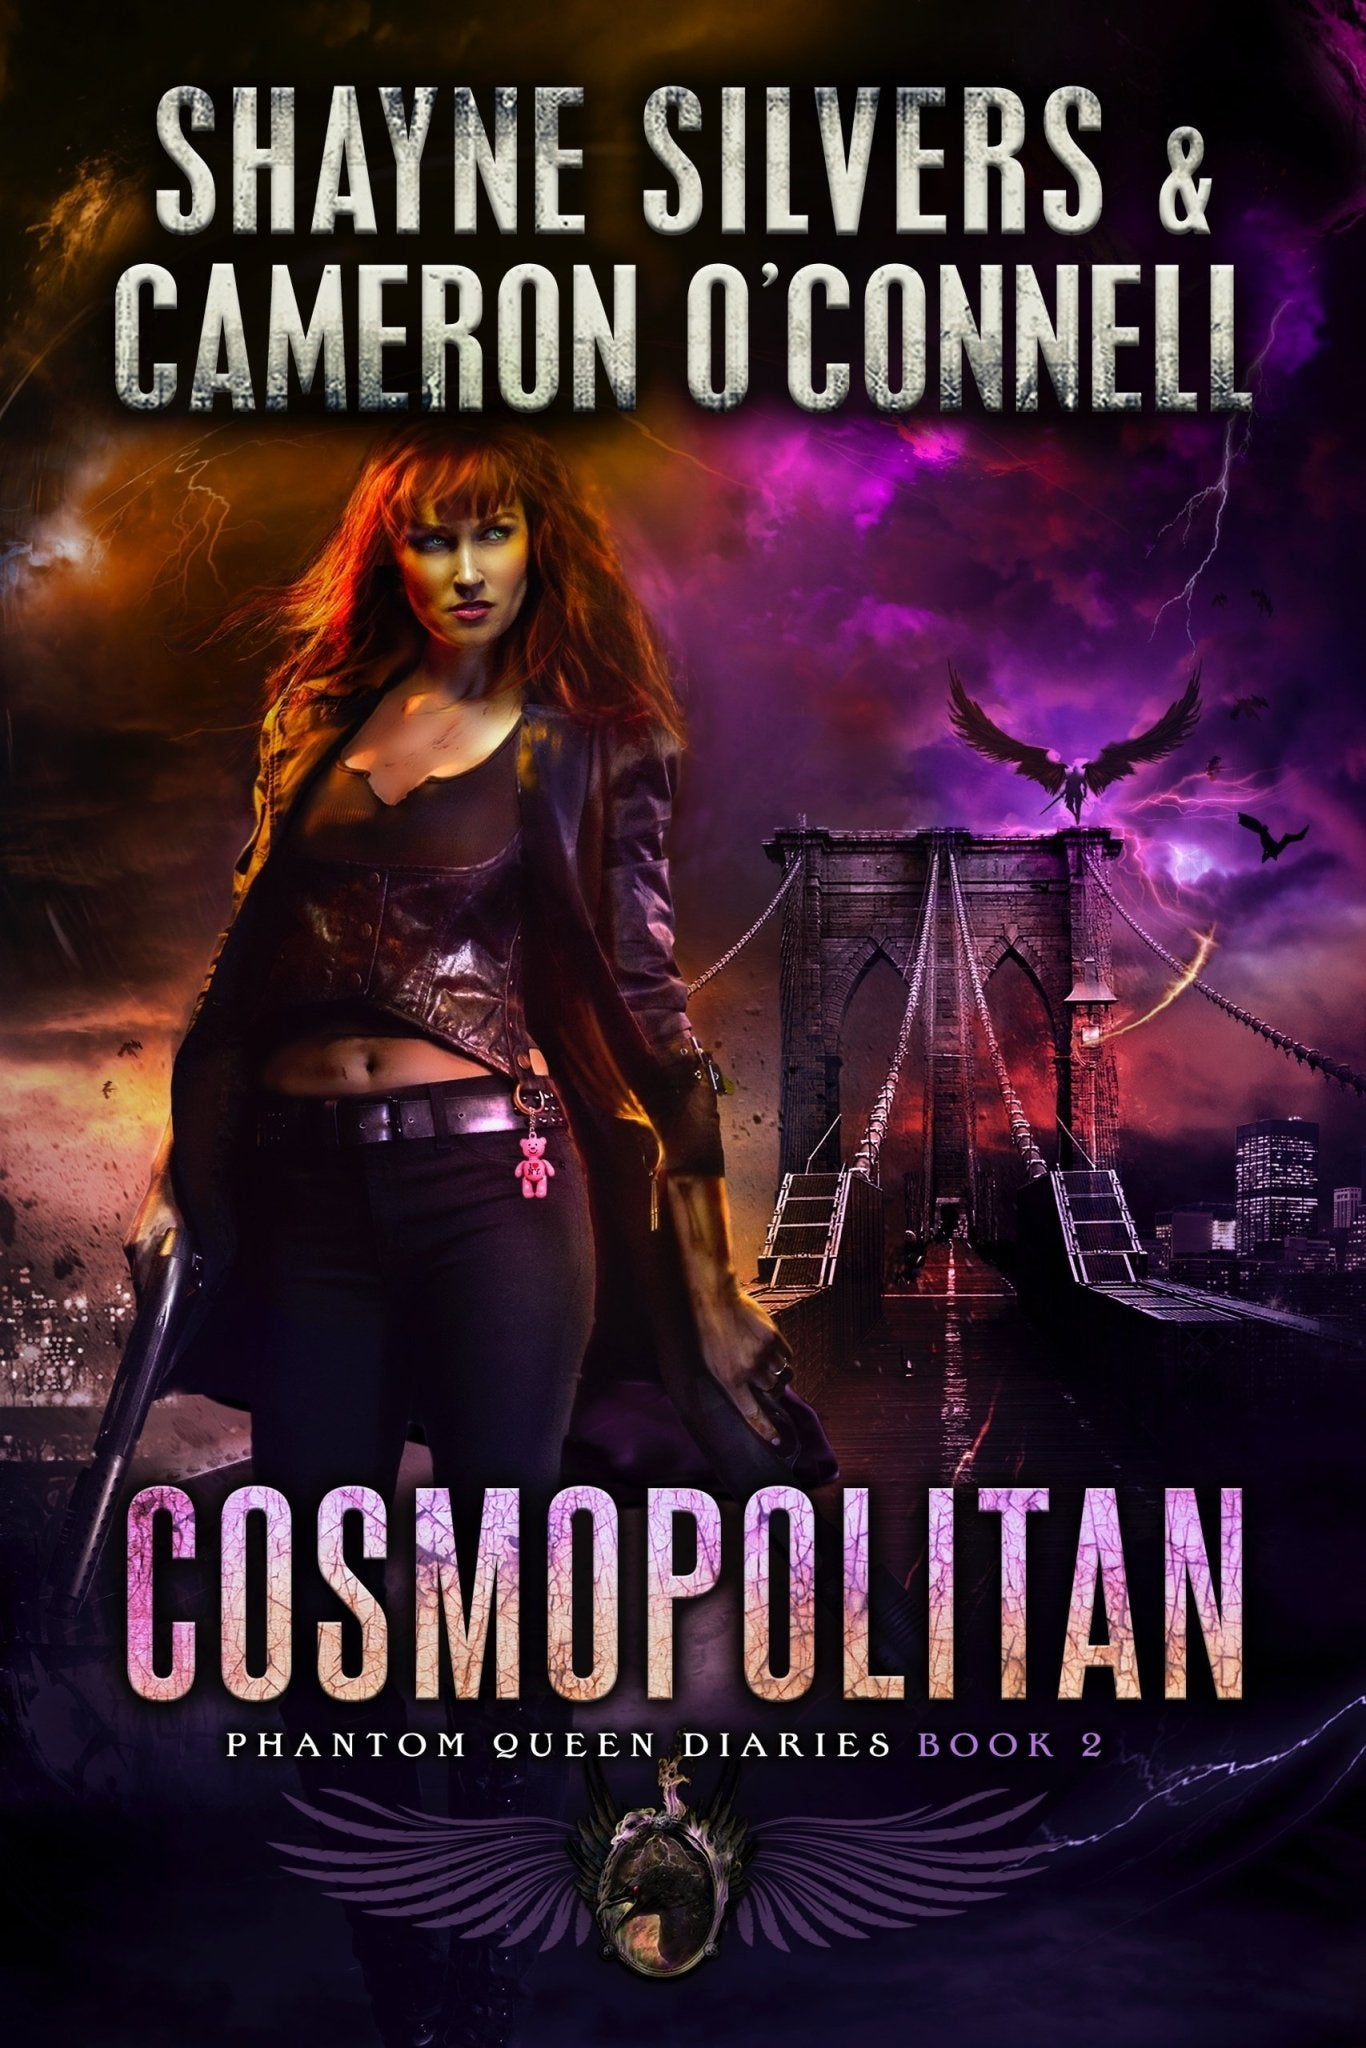 Cosmopolitan: The Phantom Queen Diaries Book 2 - A Temple Verse Series (Signed Paperback) - Temple Verse Gear